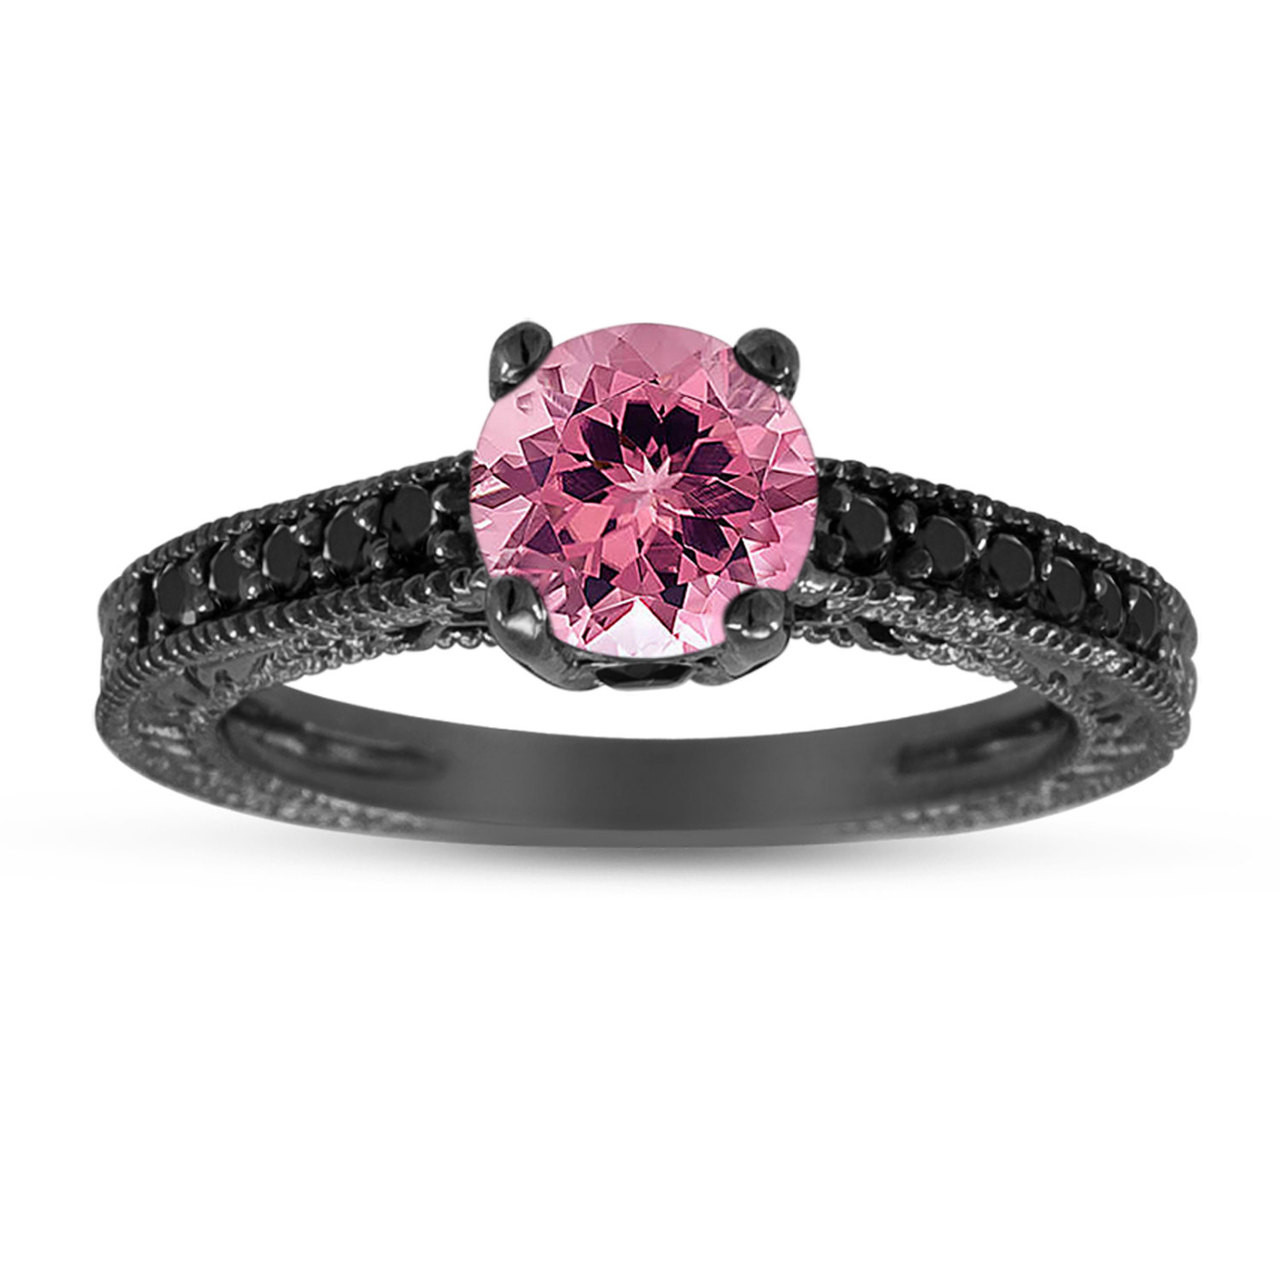 Black And Pink Diamond Engagement Rings: Pink Tourmaline & Black Diamond Engagement Ring 14K Black